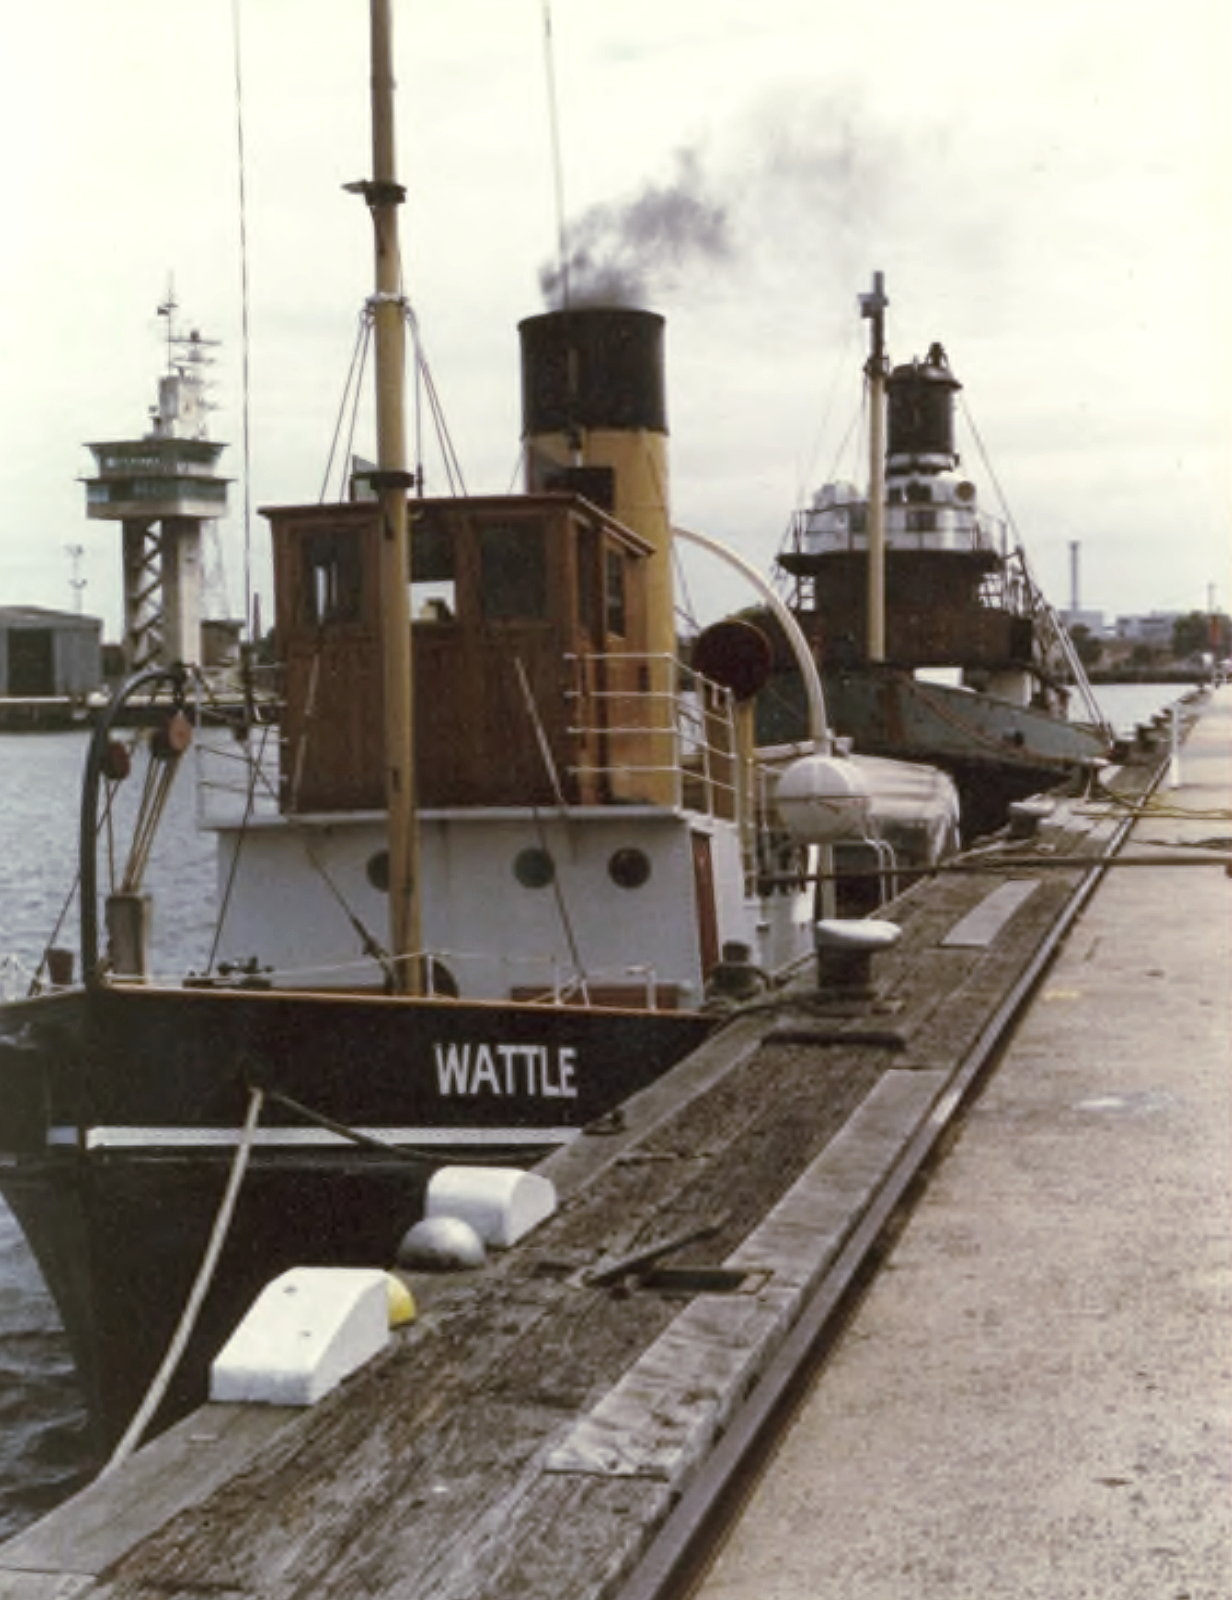 Wattle steaming up with Lyttelton II behind 1989, Jeff Malley